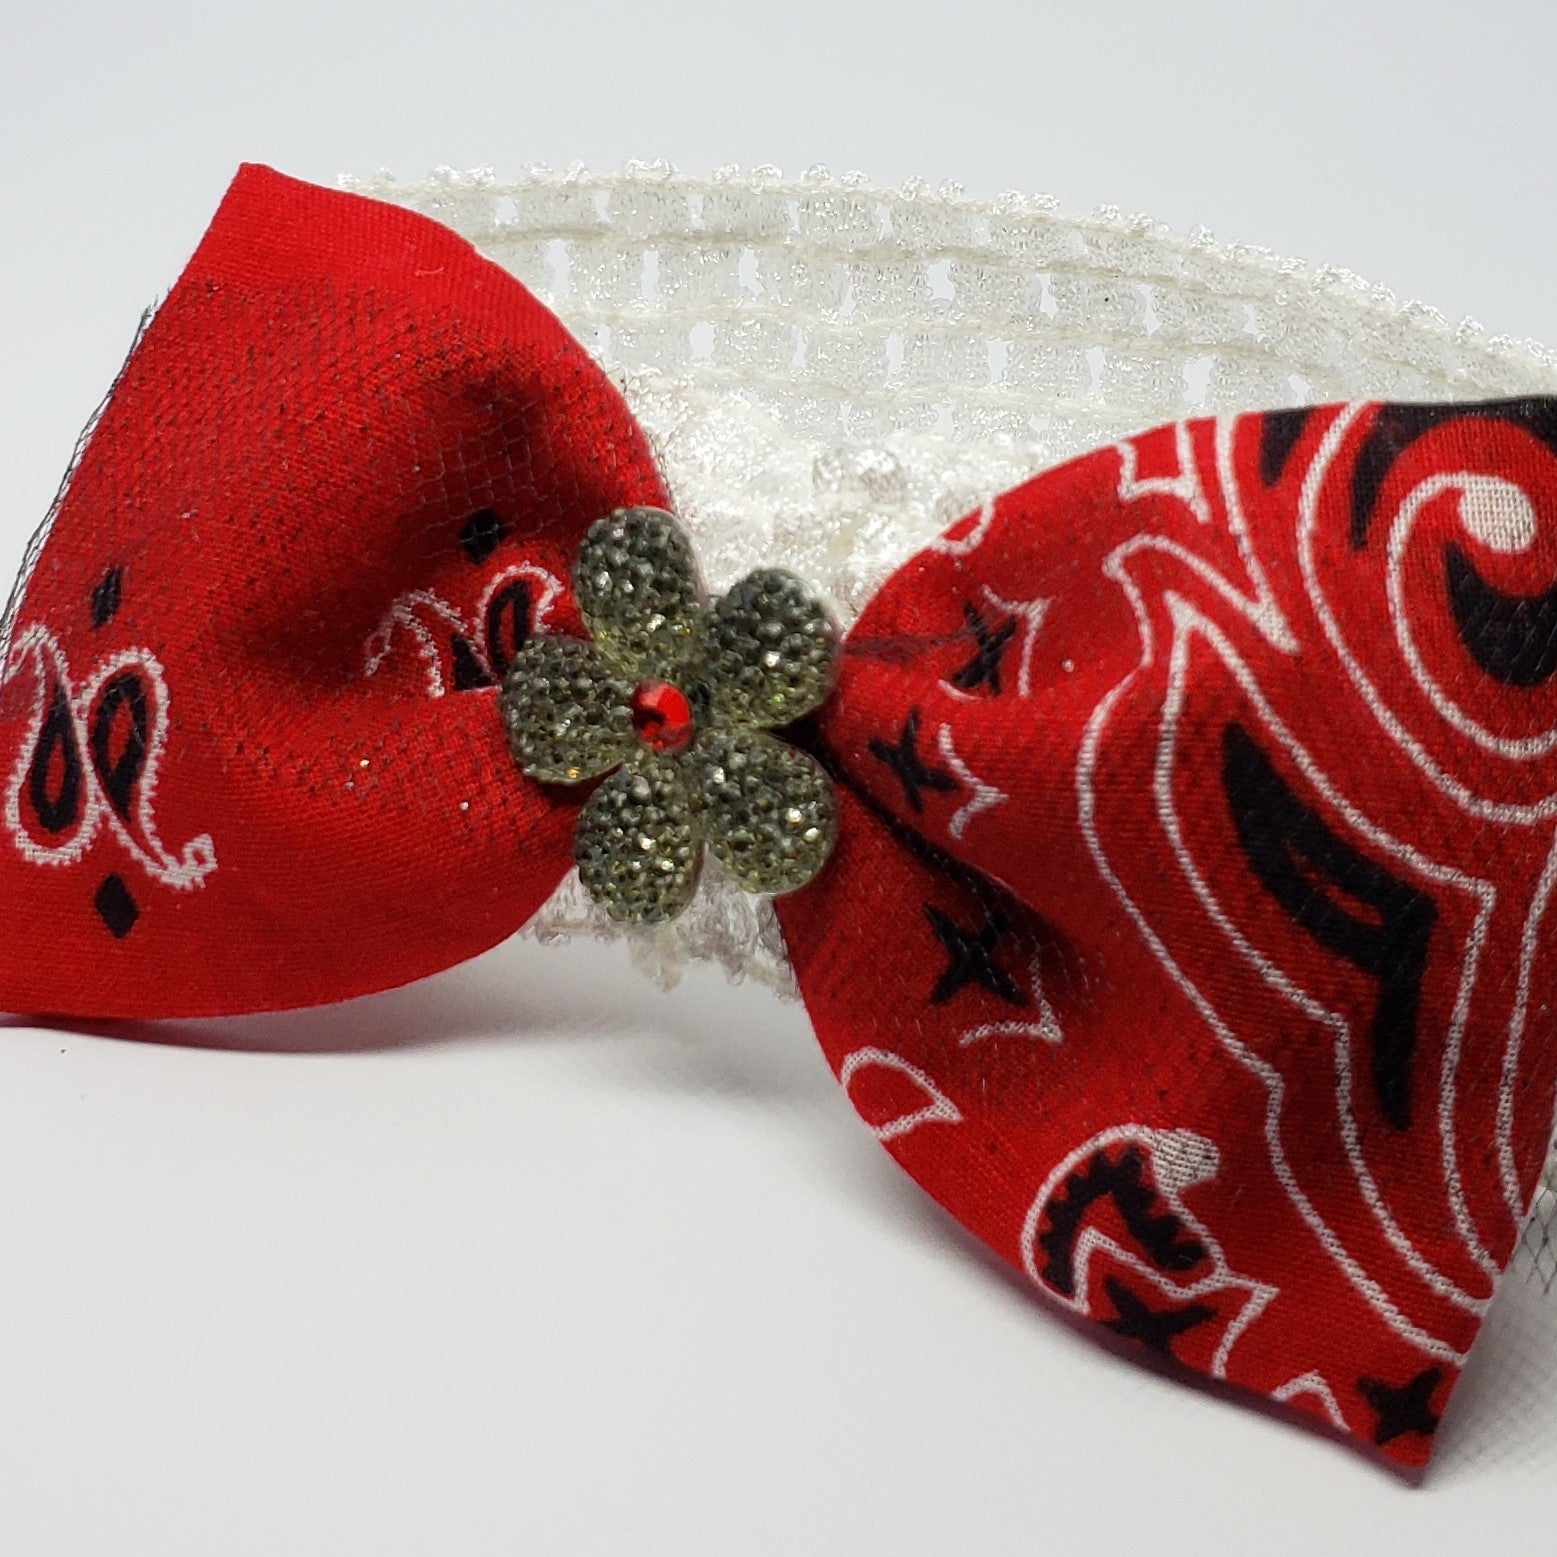 Cassidy-Dior Baby Swarovski Bandanna Crochet Headband in Red Black & White - Houzz of DVA Boutique